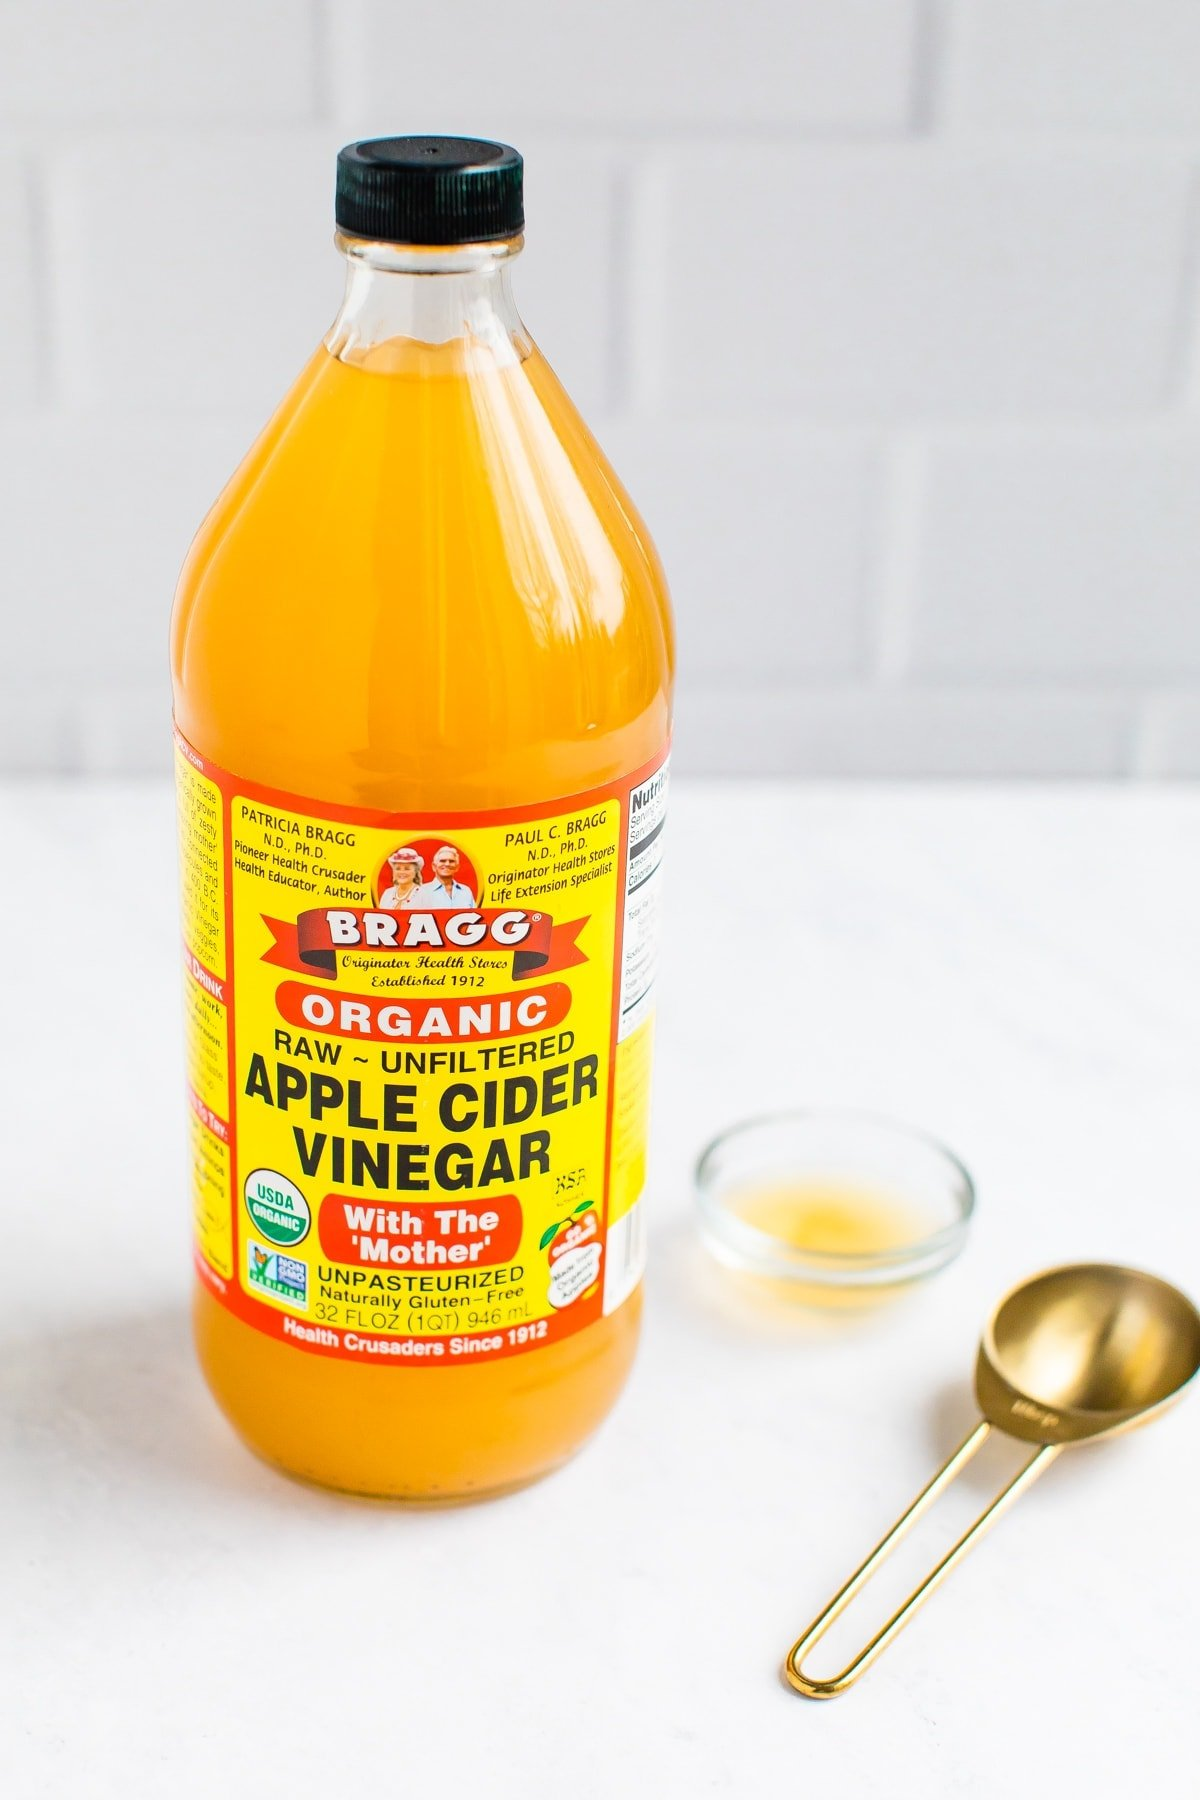 A bottle of Bragg Organic Apple Cider Vinegar with a gold tablespoon on the side.